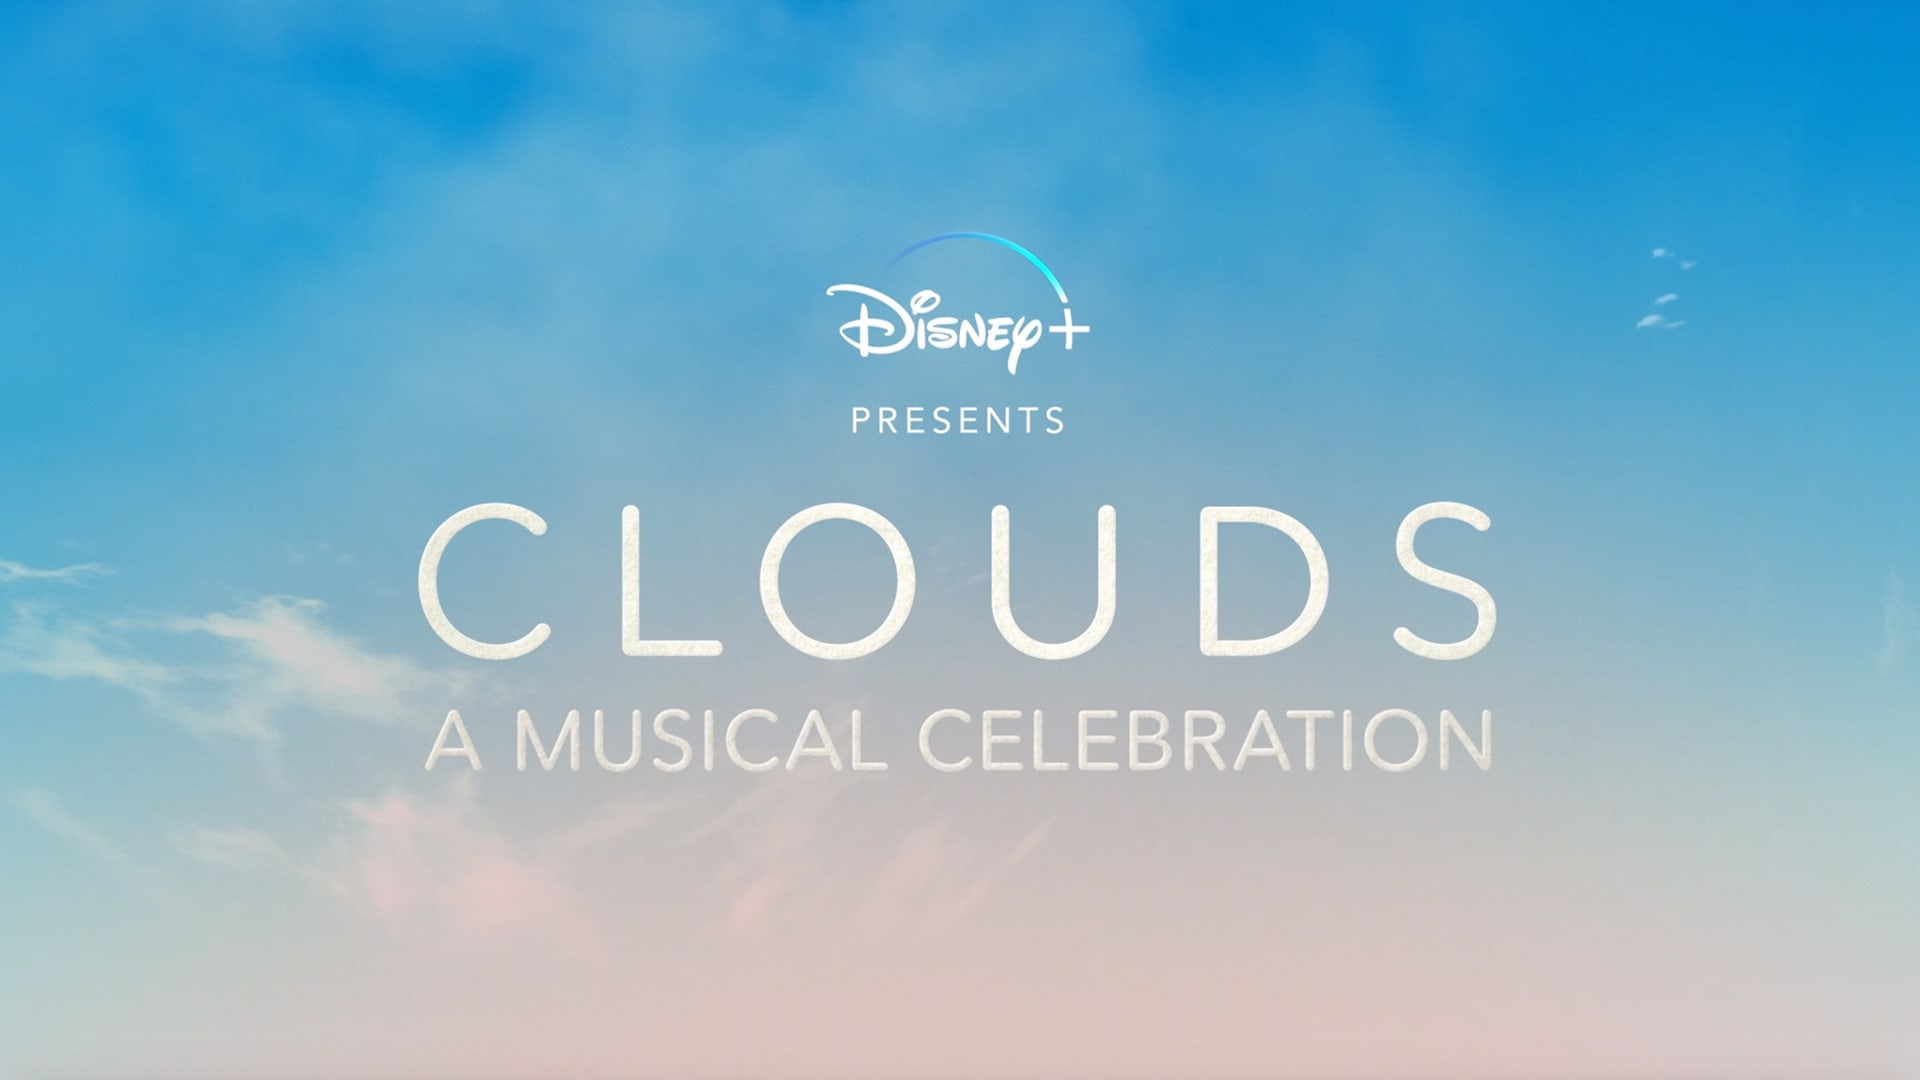 Clouds: A Musical Celebration – Teaser | Clouds | Disney+